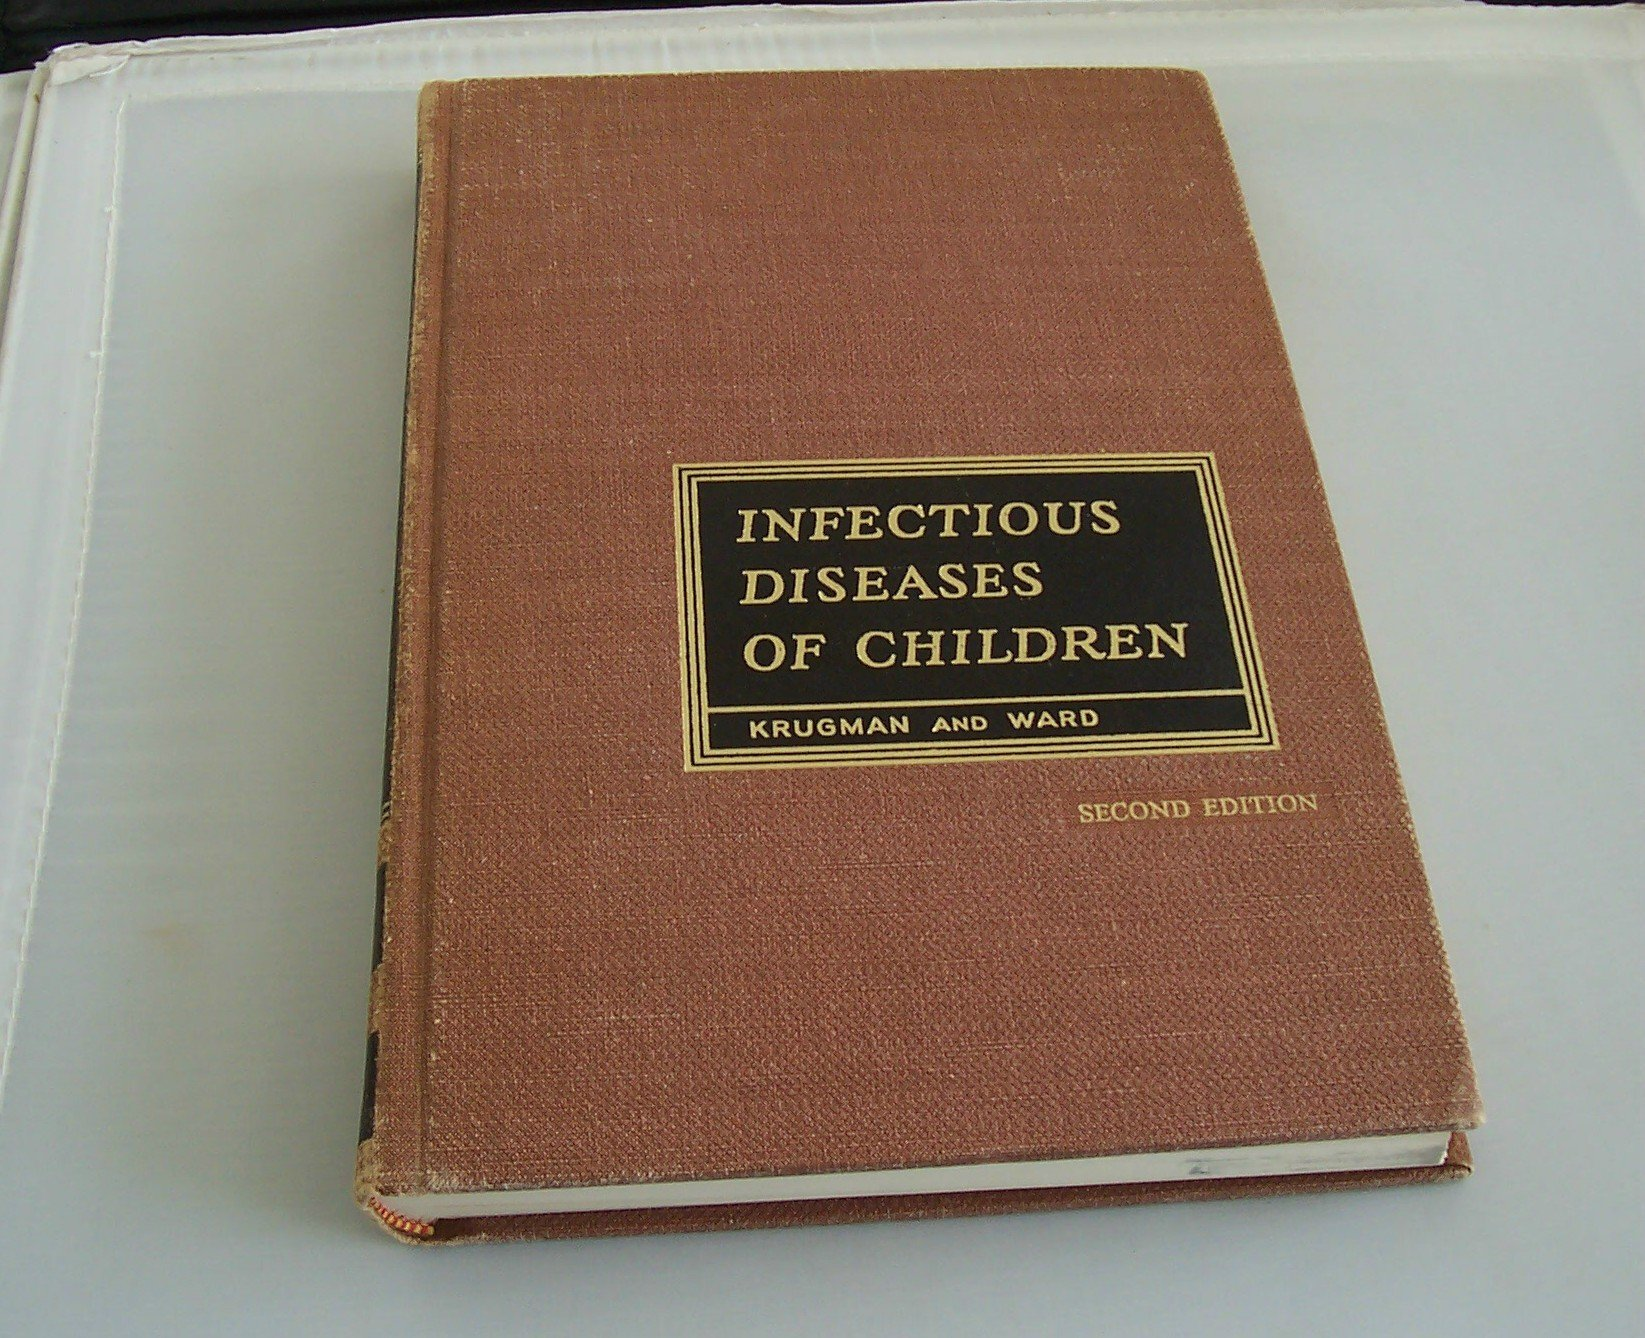 Infectious Diseases of Children, Krugman, Saul, M.D.; Ward, Robert, M.D.